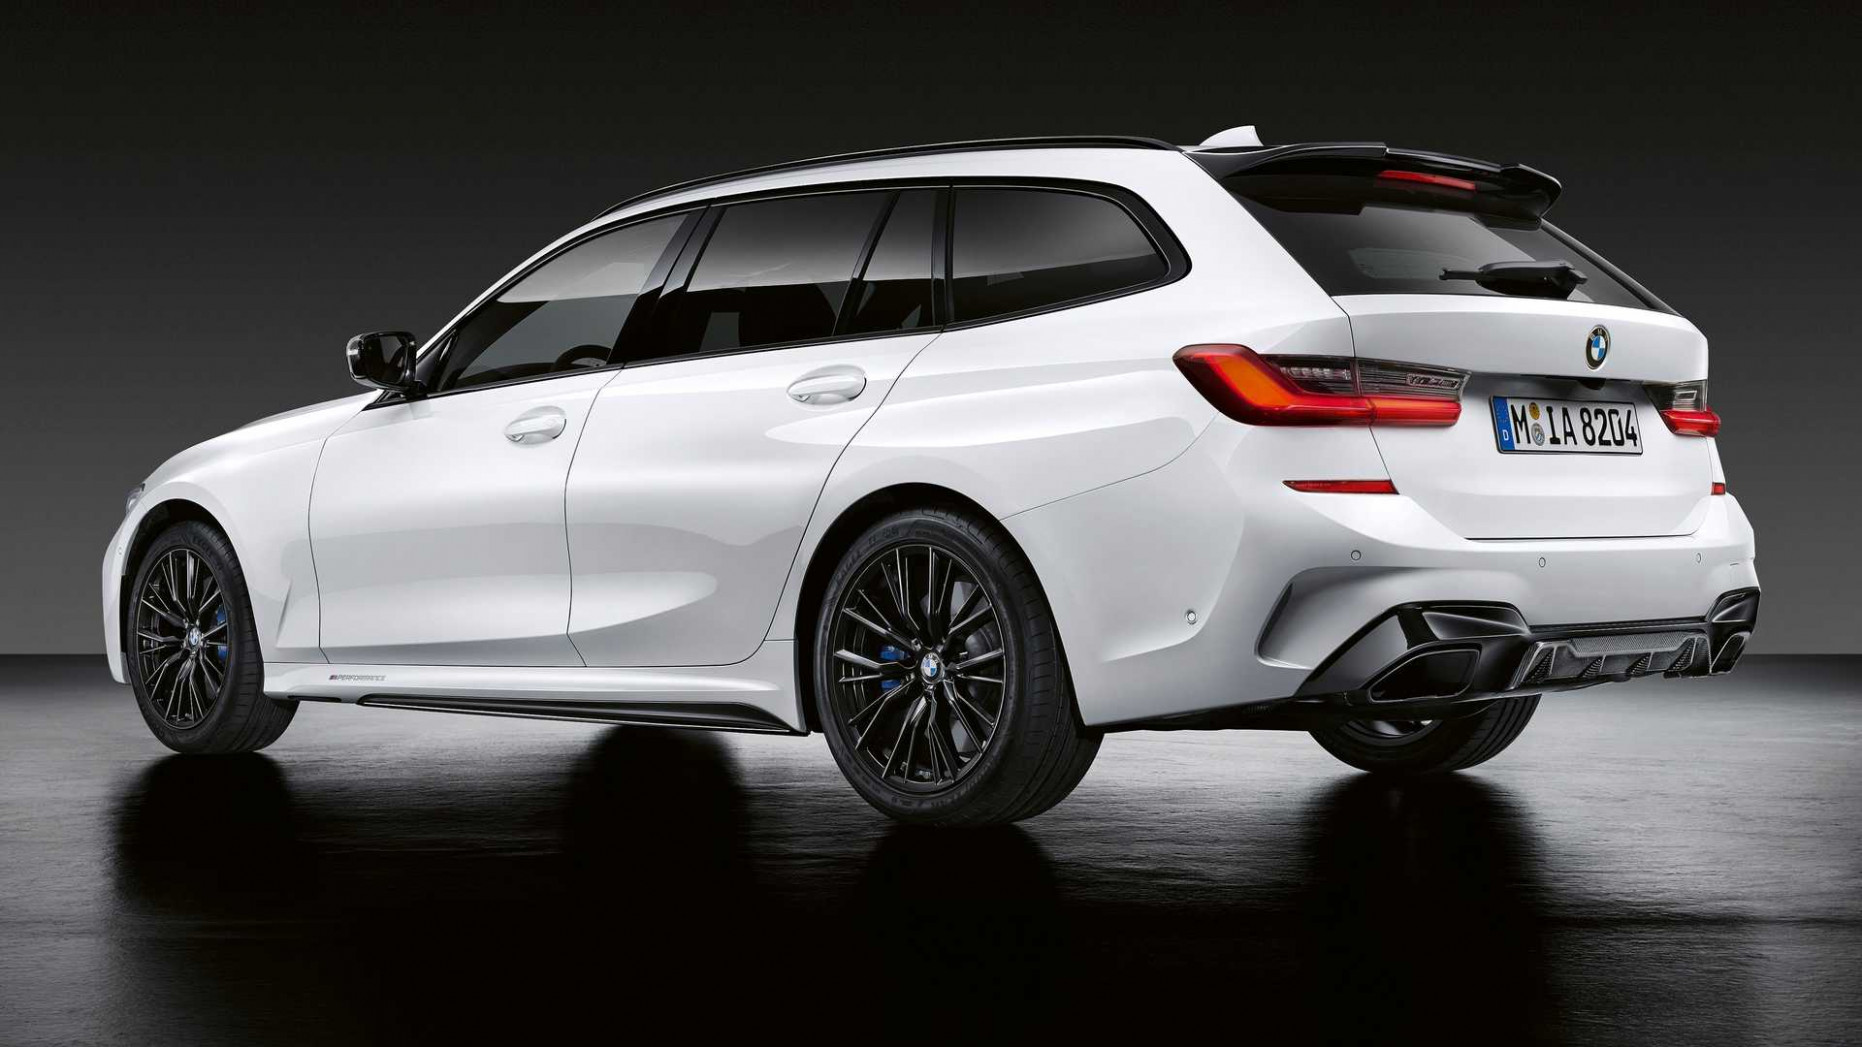 BMW 7 Series Touring, 7 Series Gran Coupe, X7 Get M Performance Parts